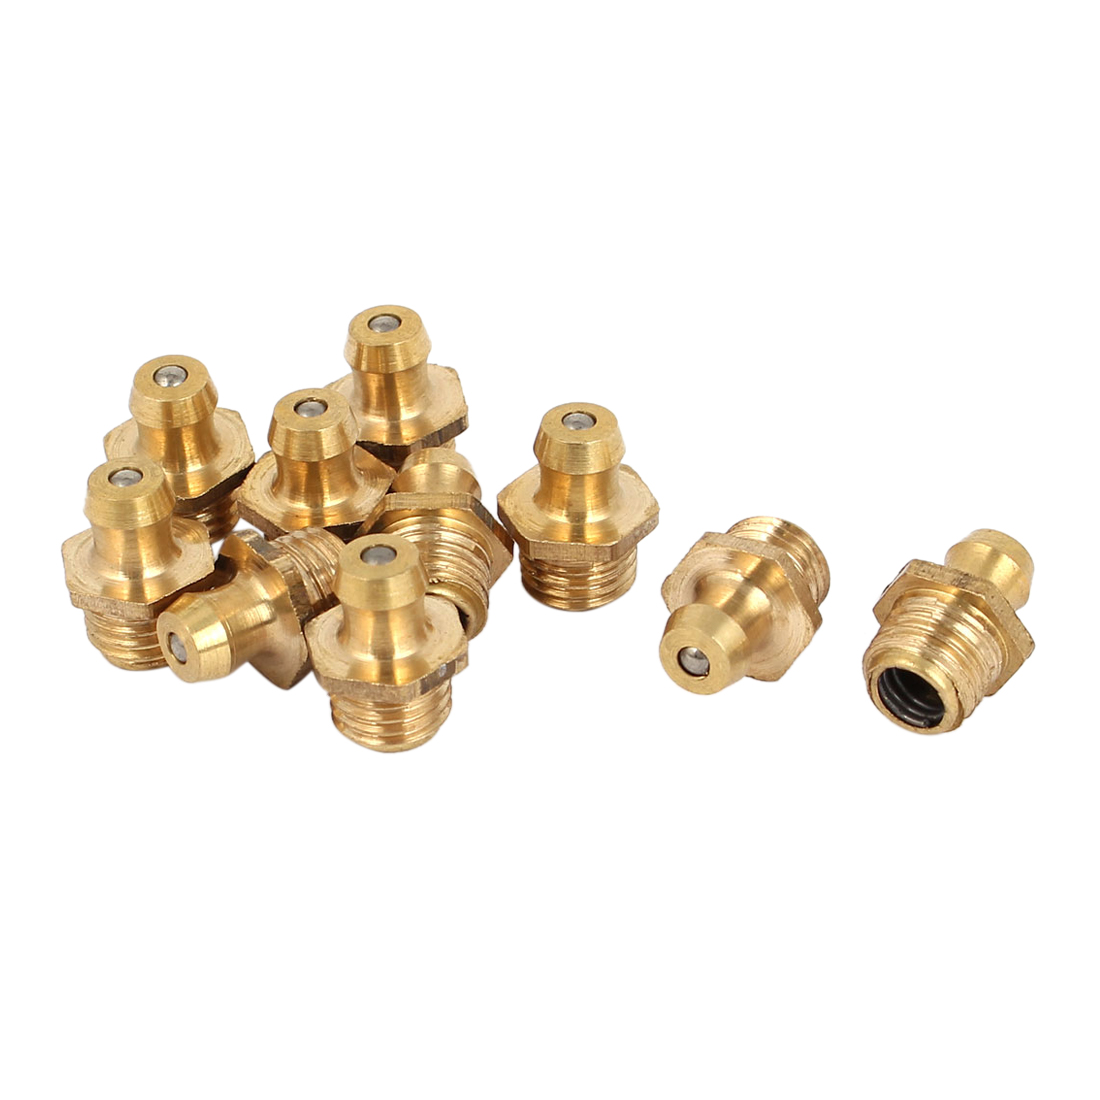 M8 Male Thread Straight Brass Zerk Grease Nipple Fittings Gold Tone 10 Pcs